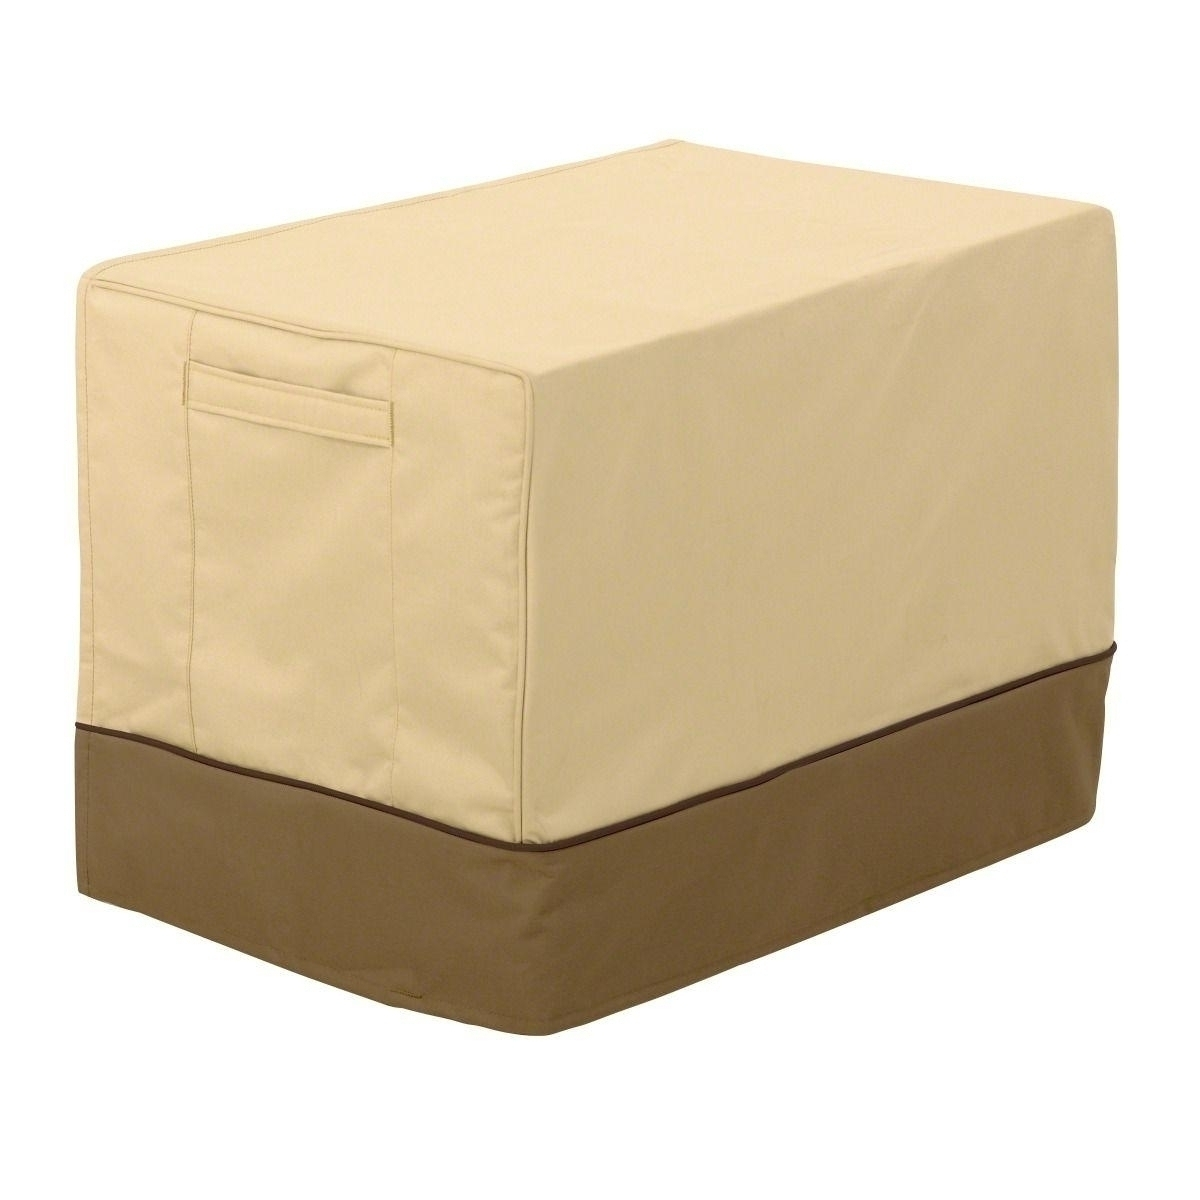 Veranda Window Air Conditioner Cover-medium - 55-452-150301-rt - Patio-furniture-covers Cooling Covers 55-452-150301-RT